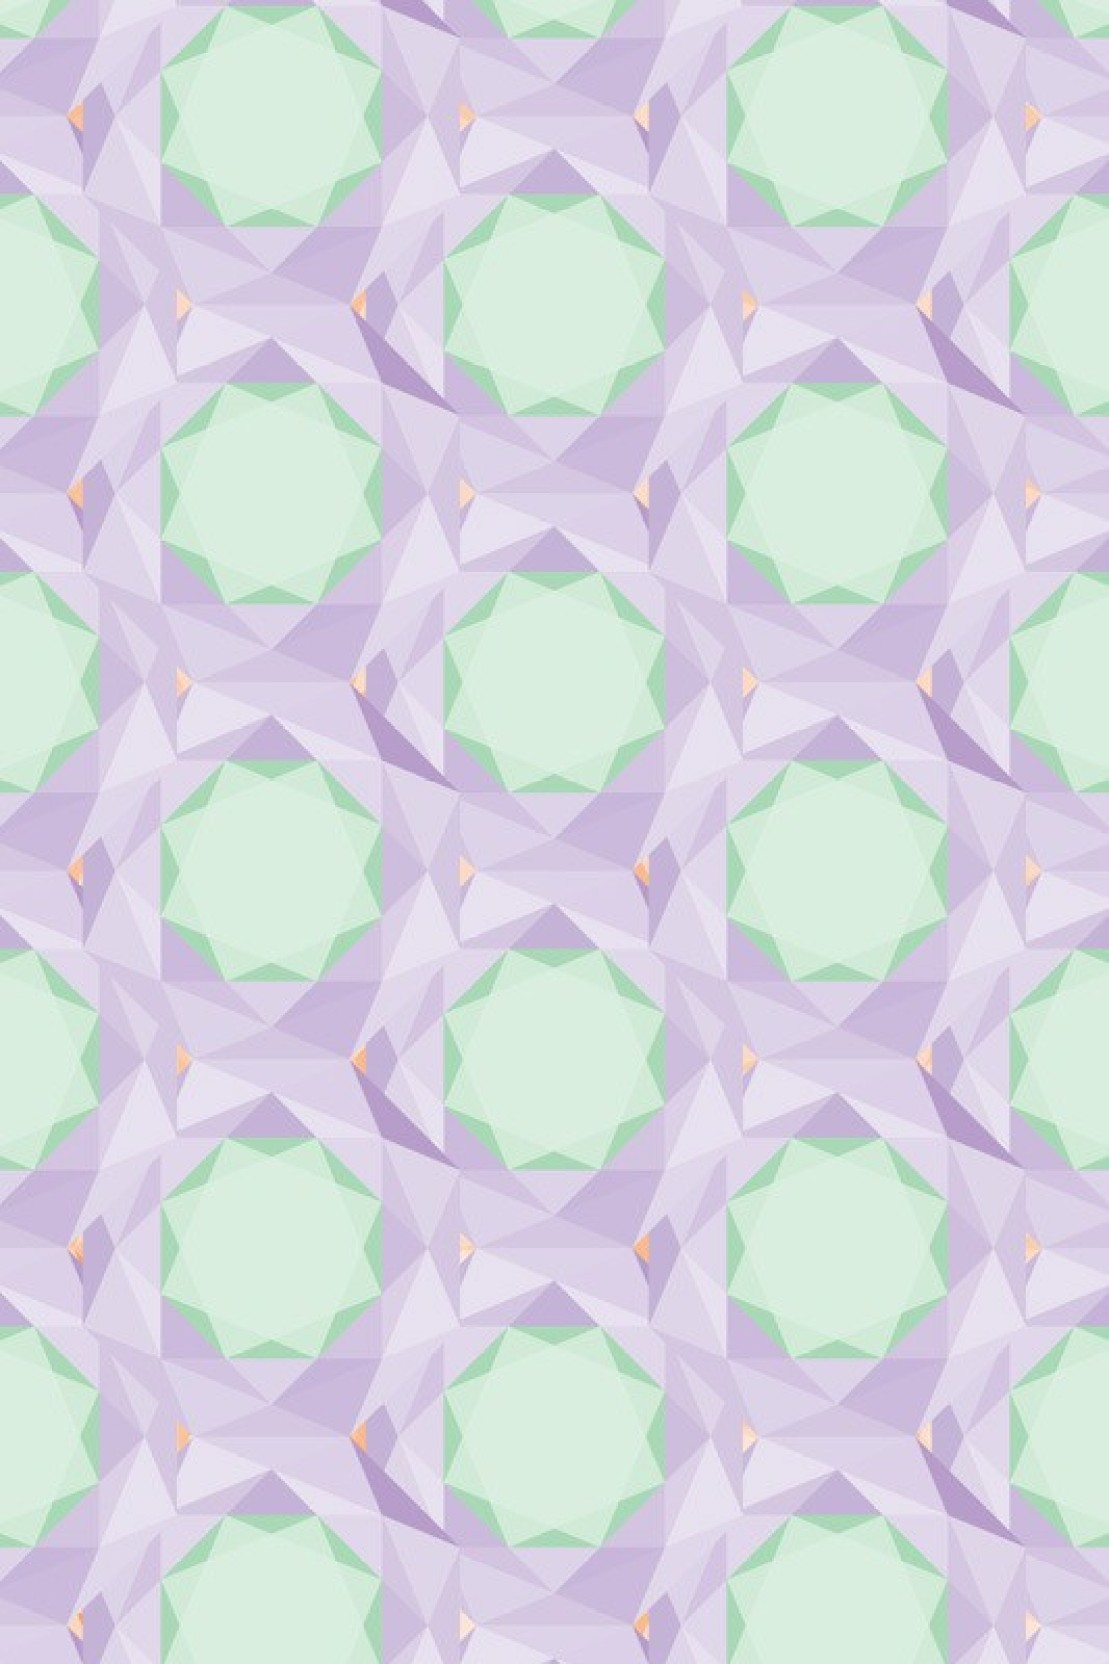 Athah Poster Diamond Pattern Purple Paper Print - Abstract posters